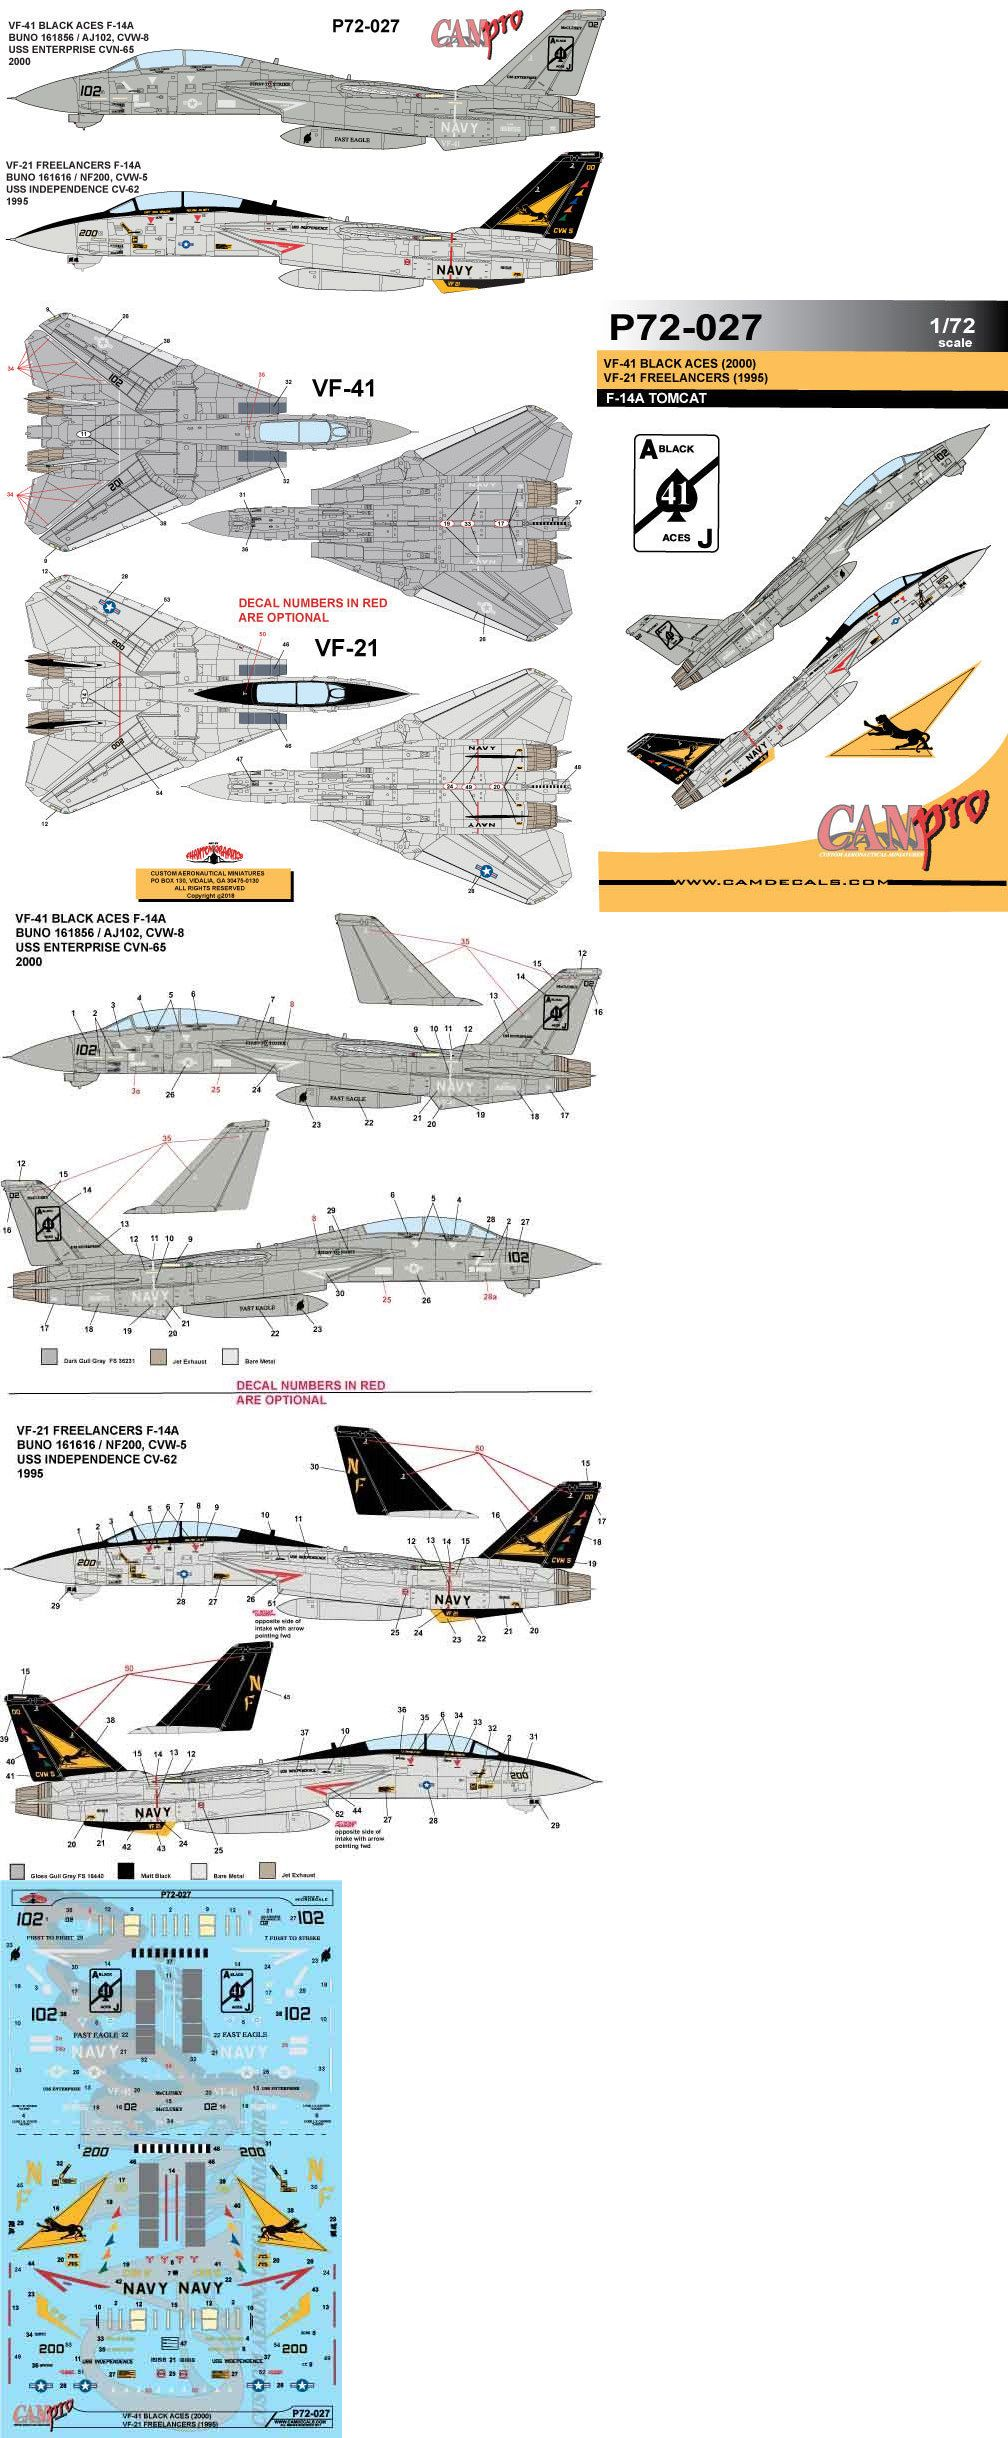 Cam Pro Decal 1 72 Scale P72 027 F 14a Tomcat Vf 41 Black Aces 2000 Ebay Decals Map Stuff To Buy